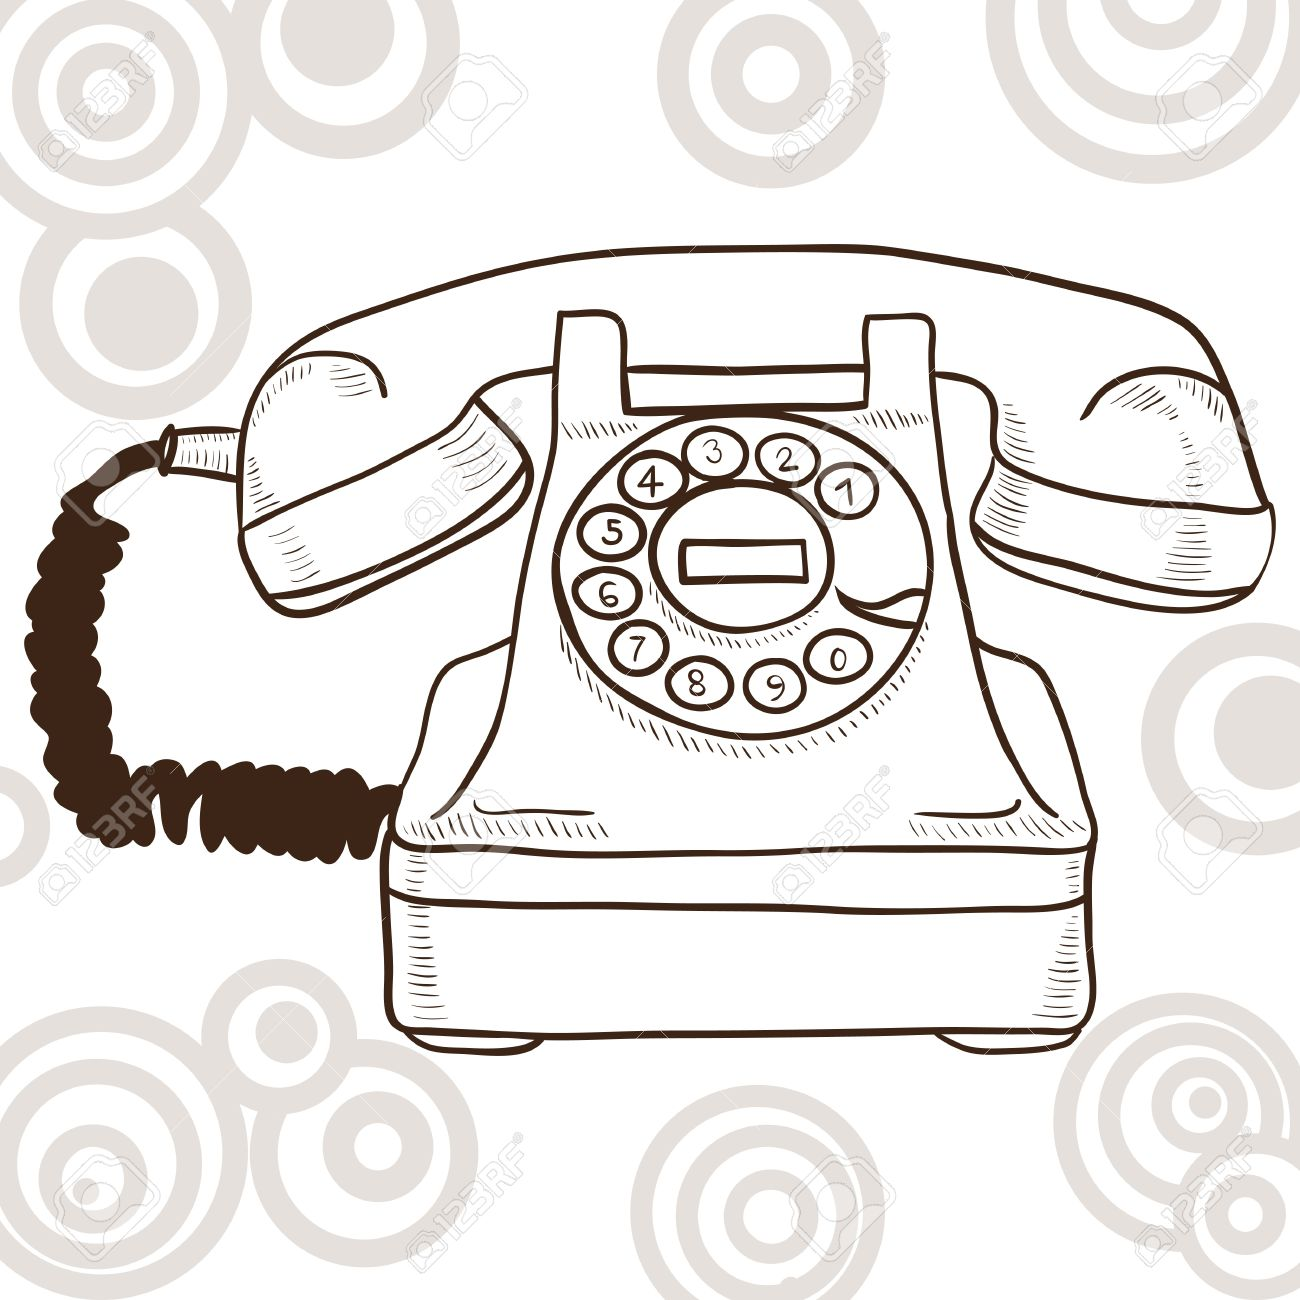 Old Vintage Telephone Illustration With Retro Look